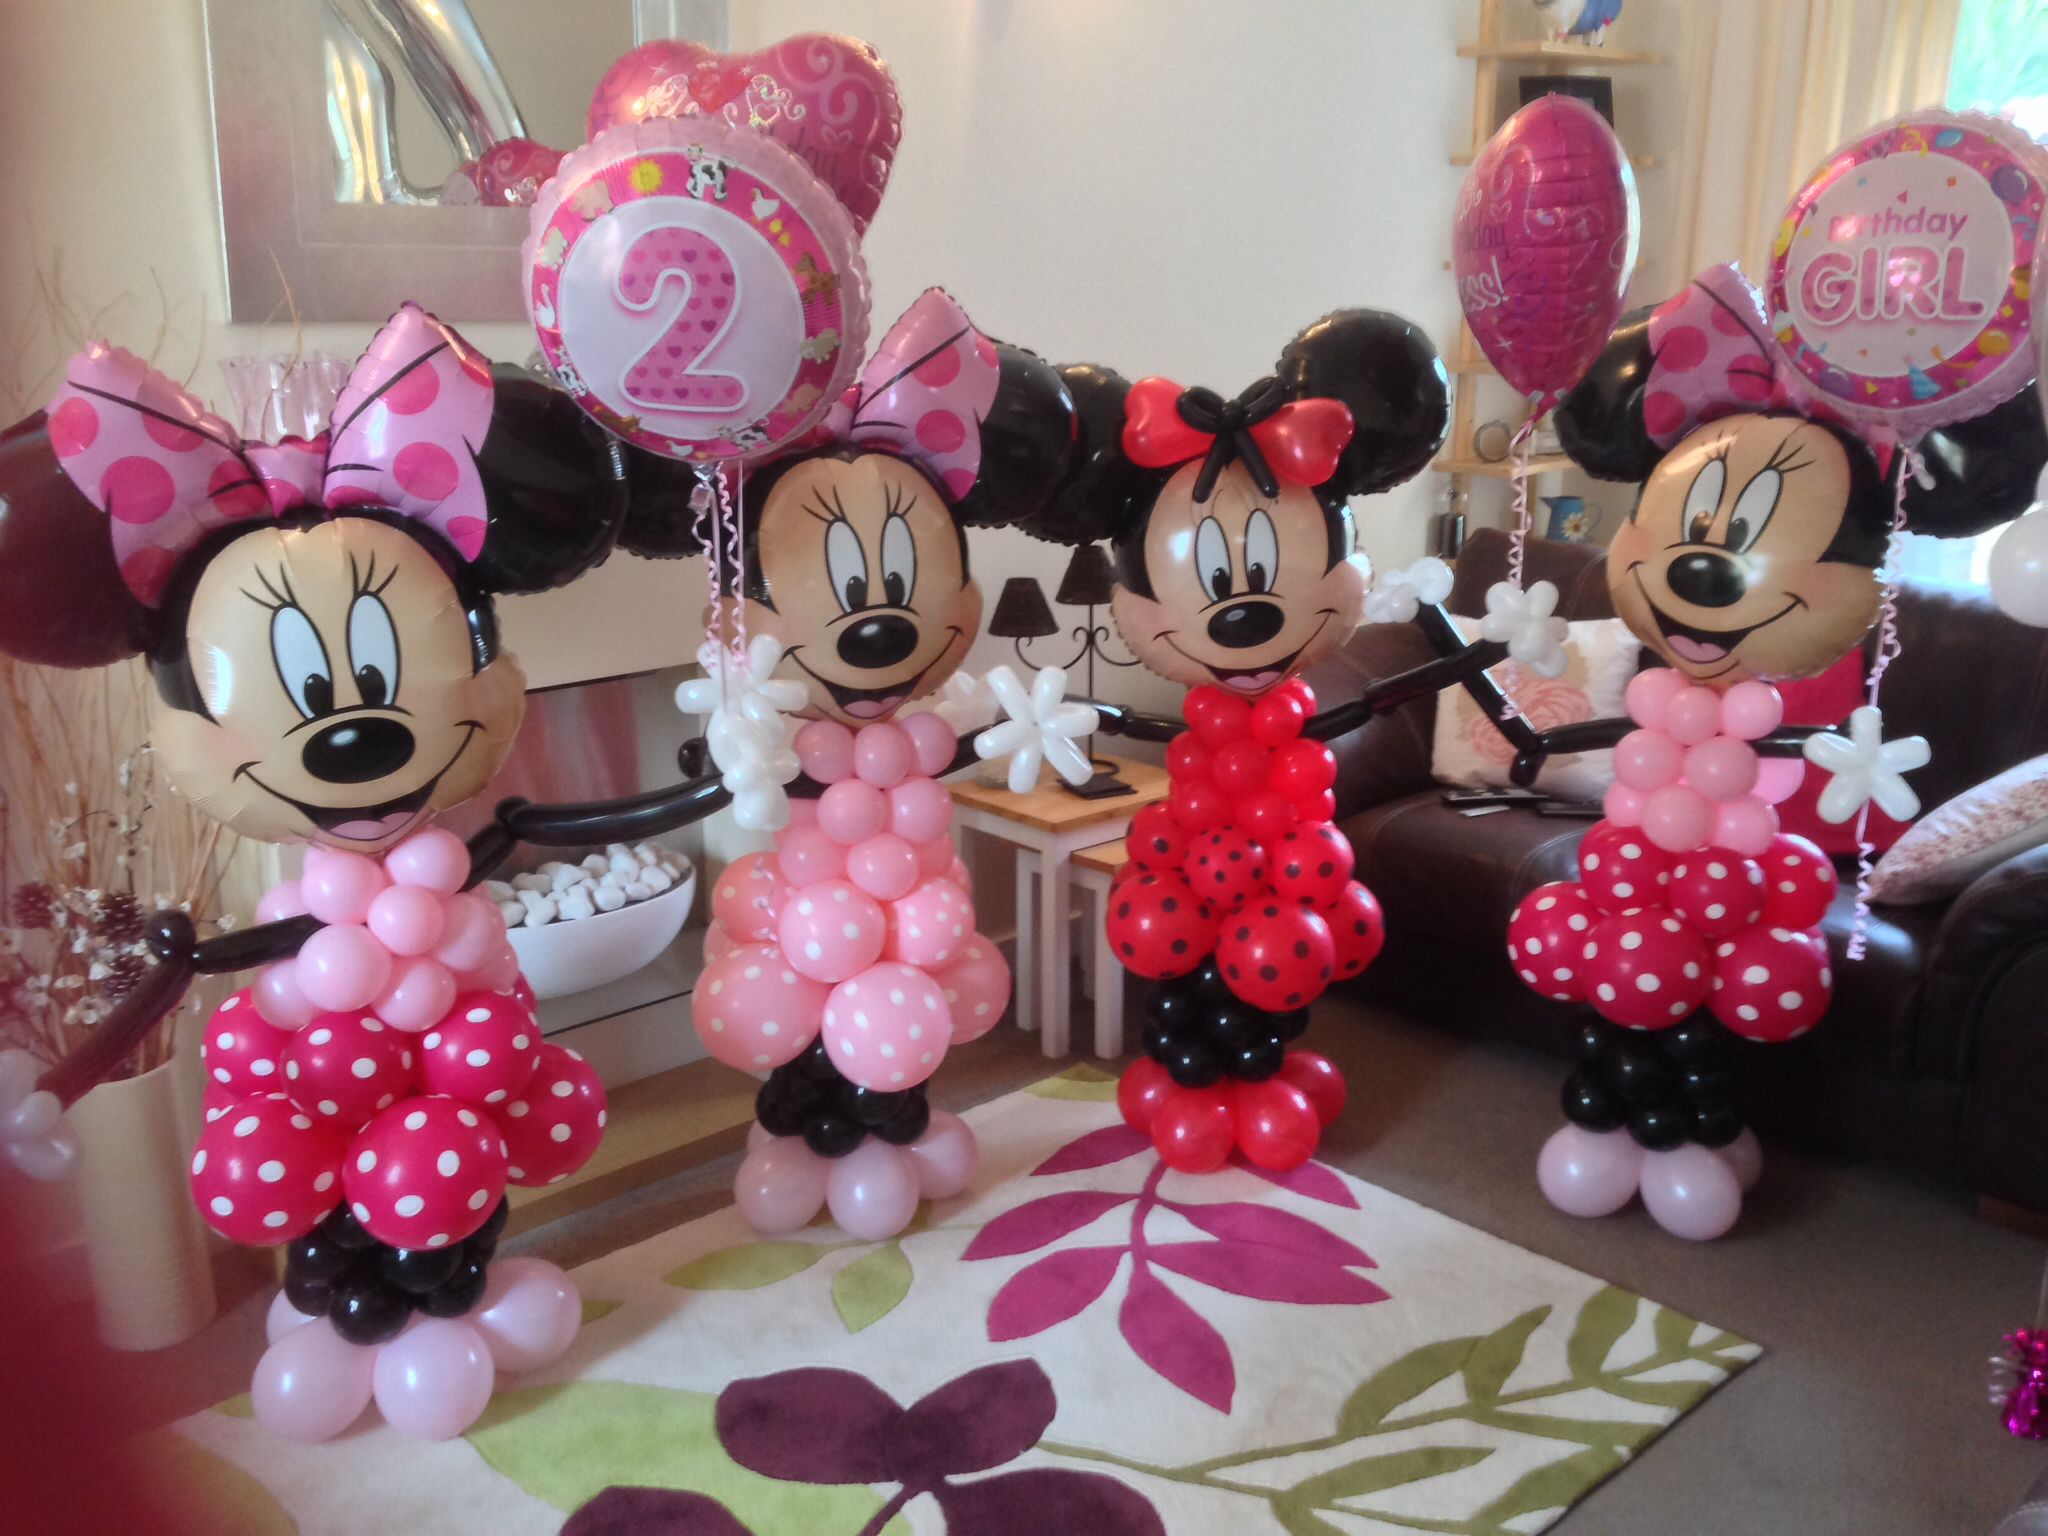 Minnie Mouse Balloon Party X Minnie Mouse Balloons Minnie Mouse